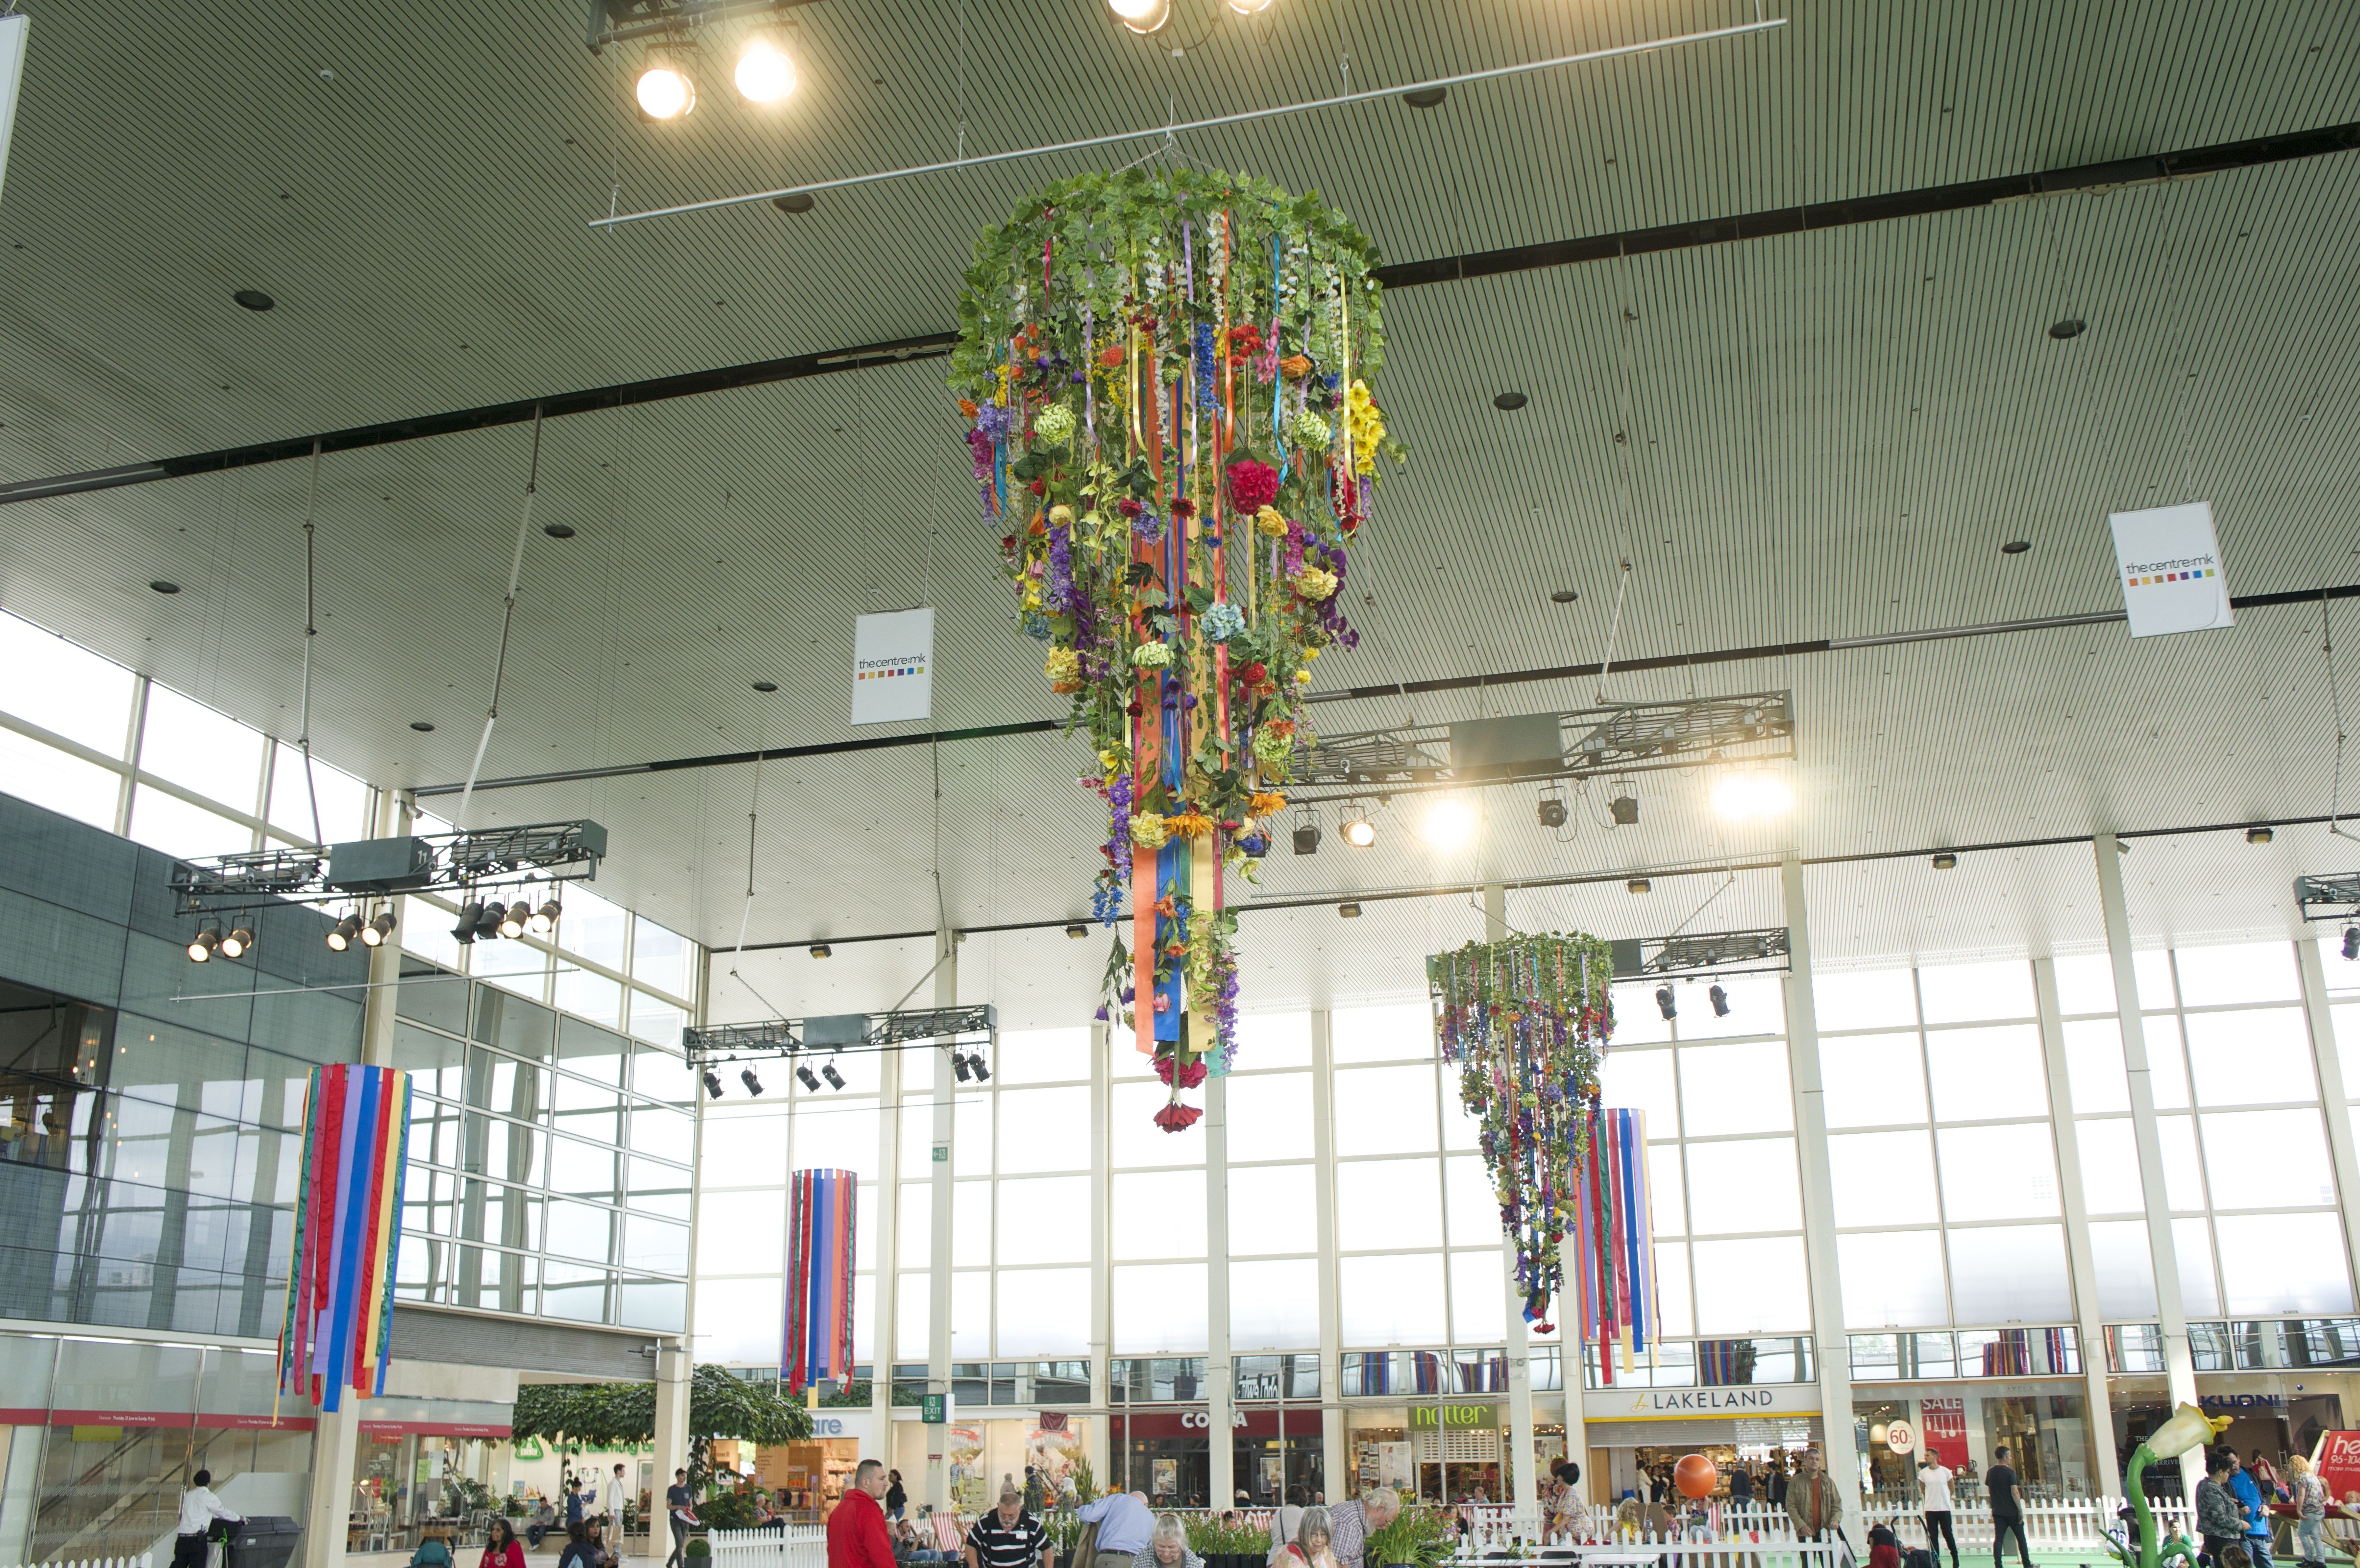 MK centre giant ribbon chandeliers